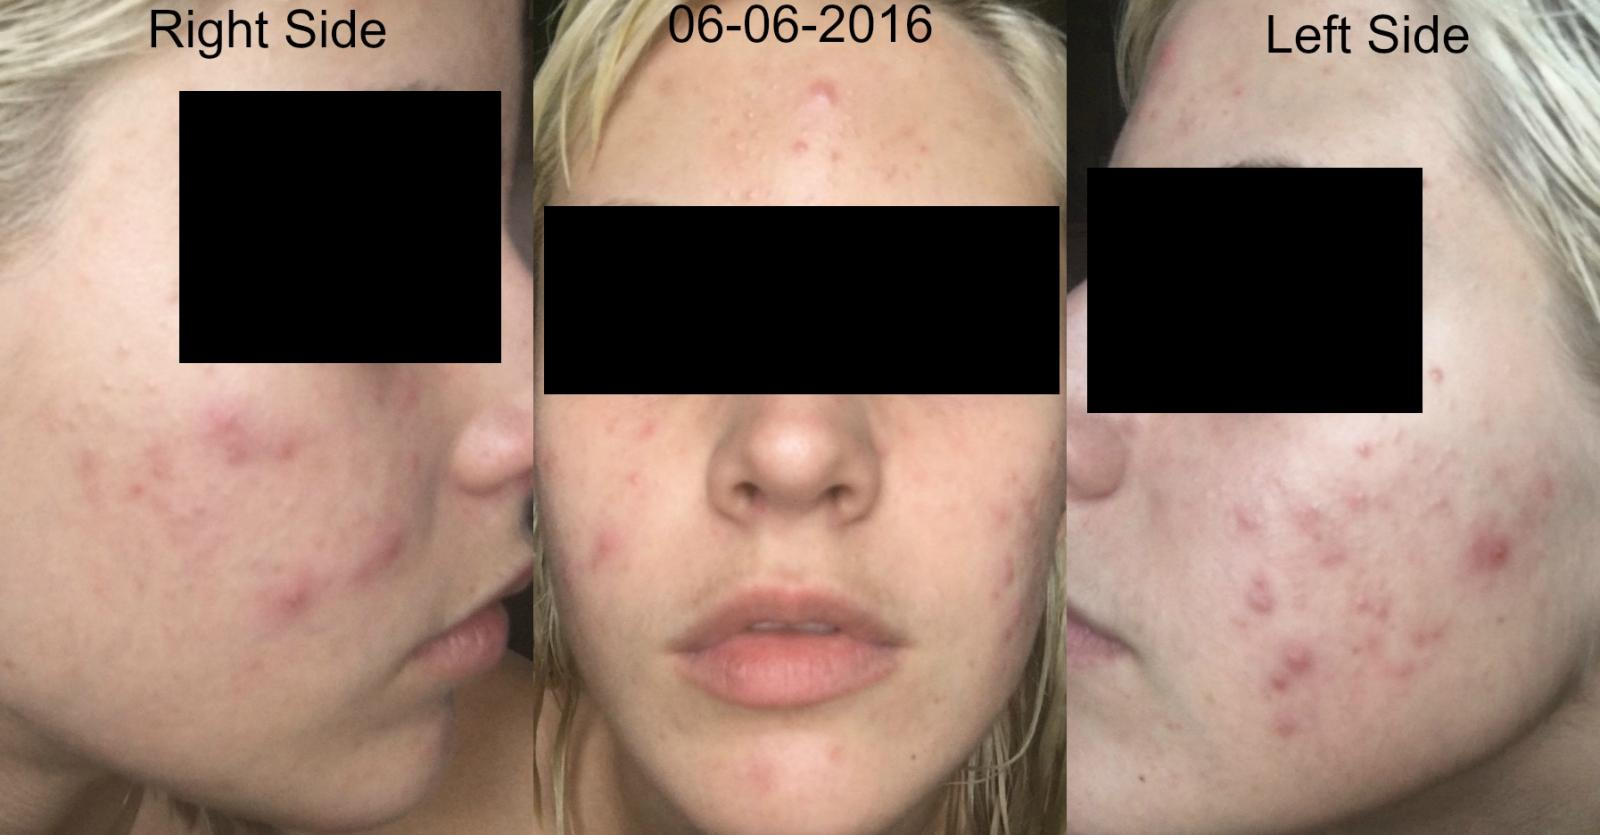 YoDerm 5 Weeks After Starting Retin-A and Aczone Regimen